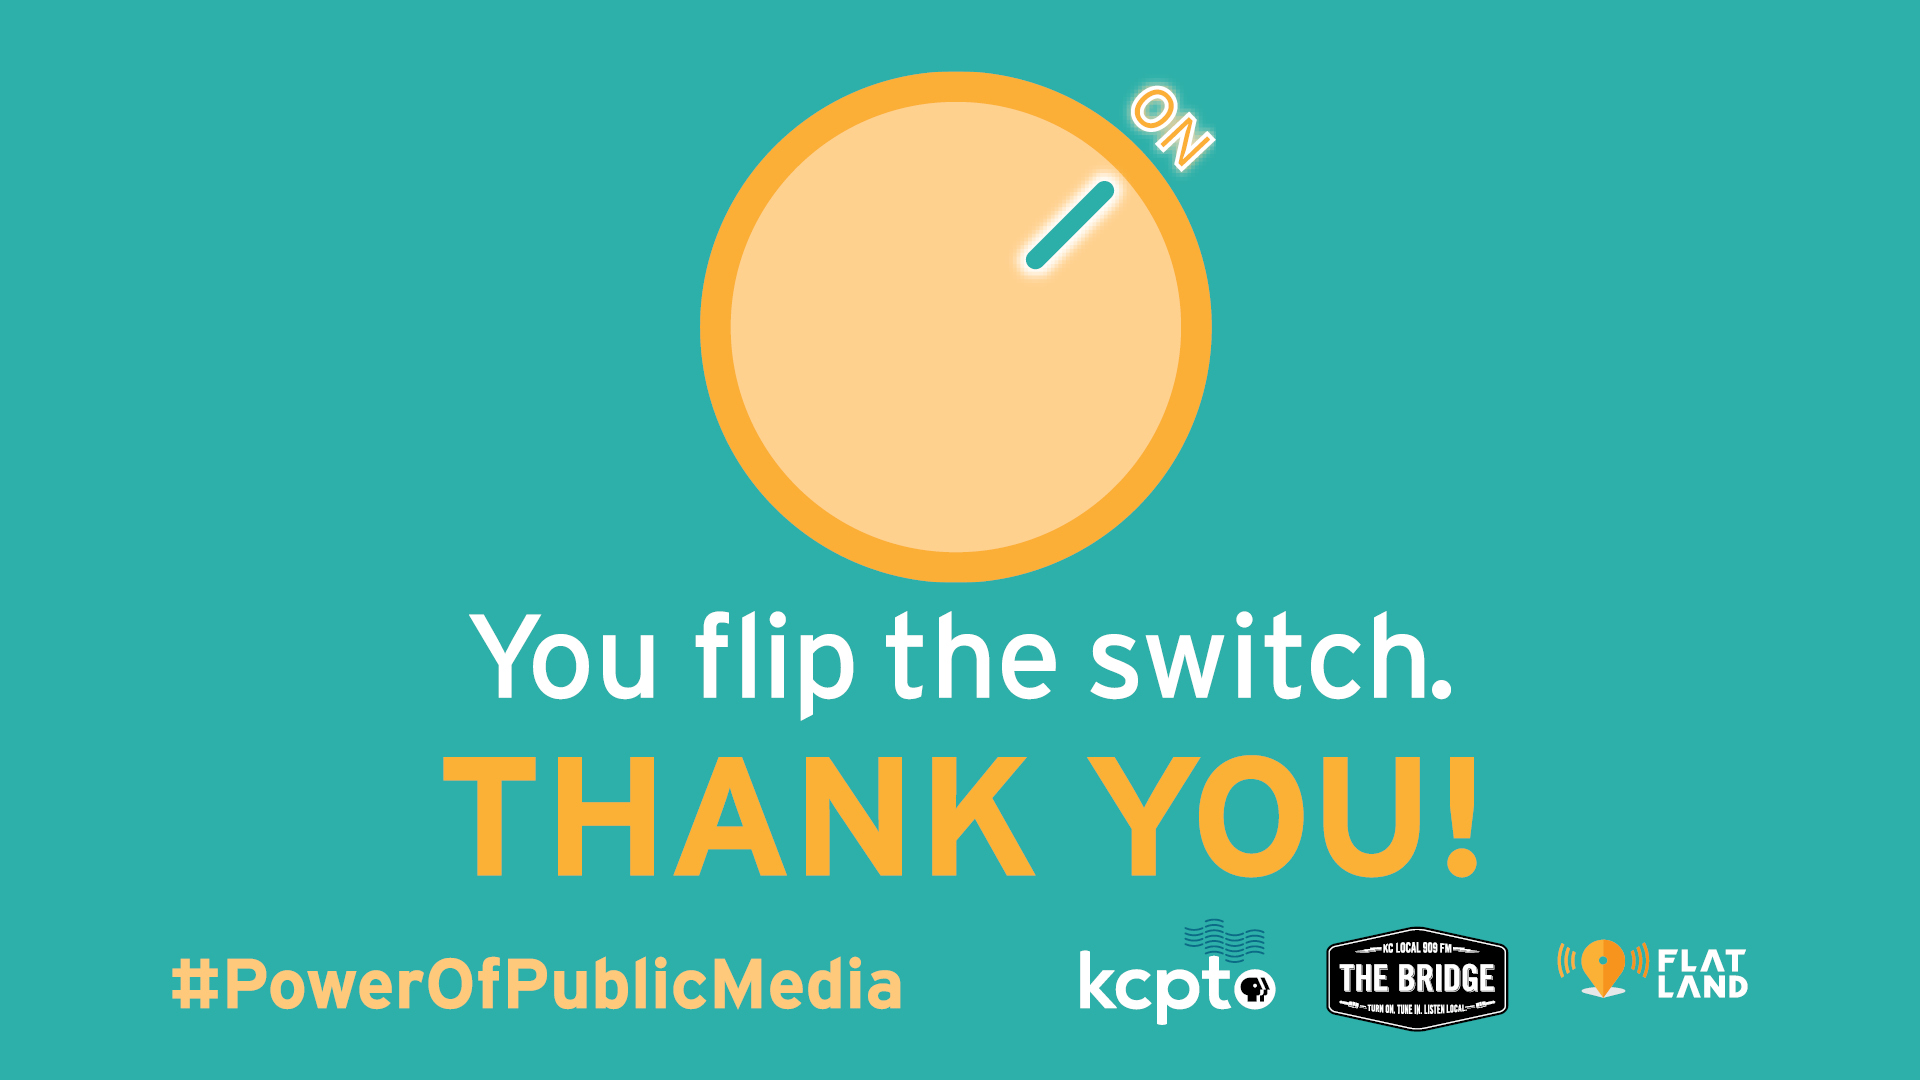 You flip the switch. Thank You.